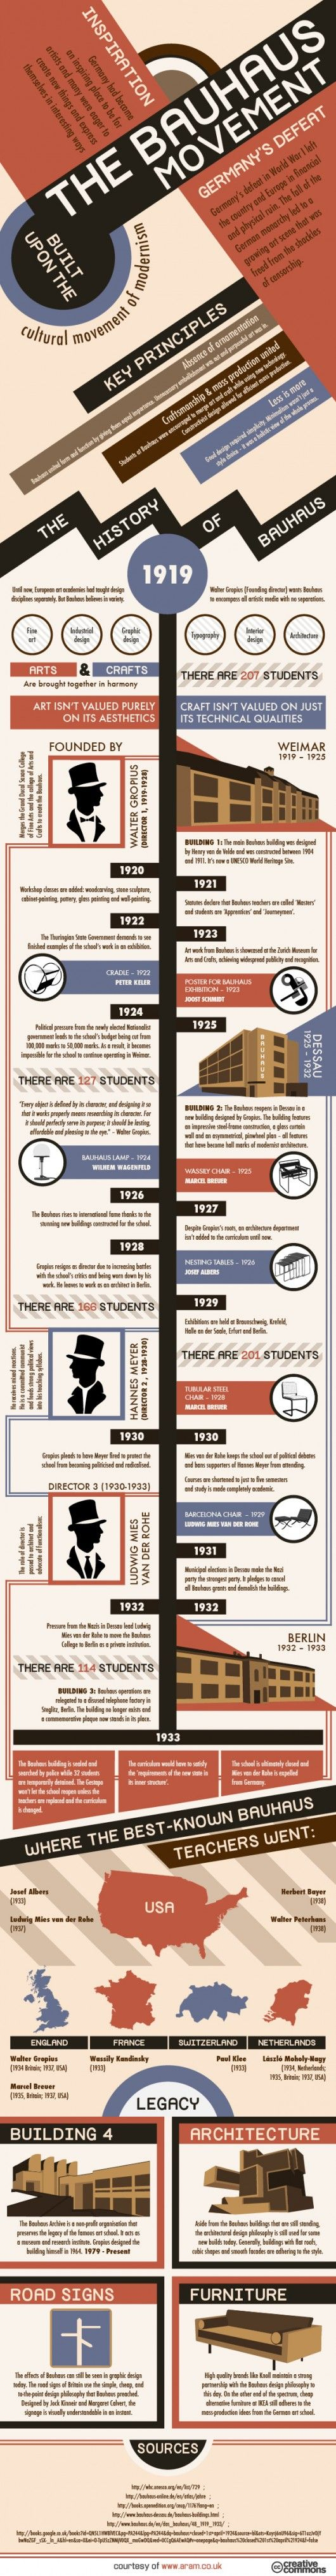 Infographic: The Bauhaus Movement and the School that Started it All